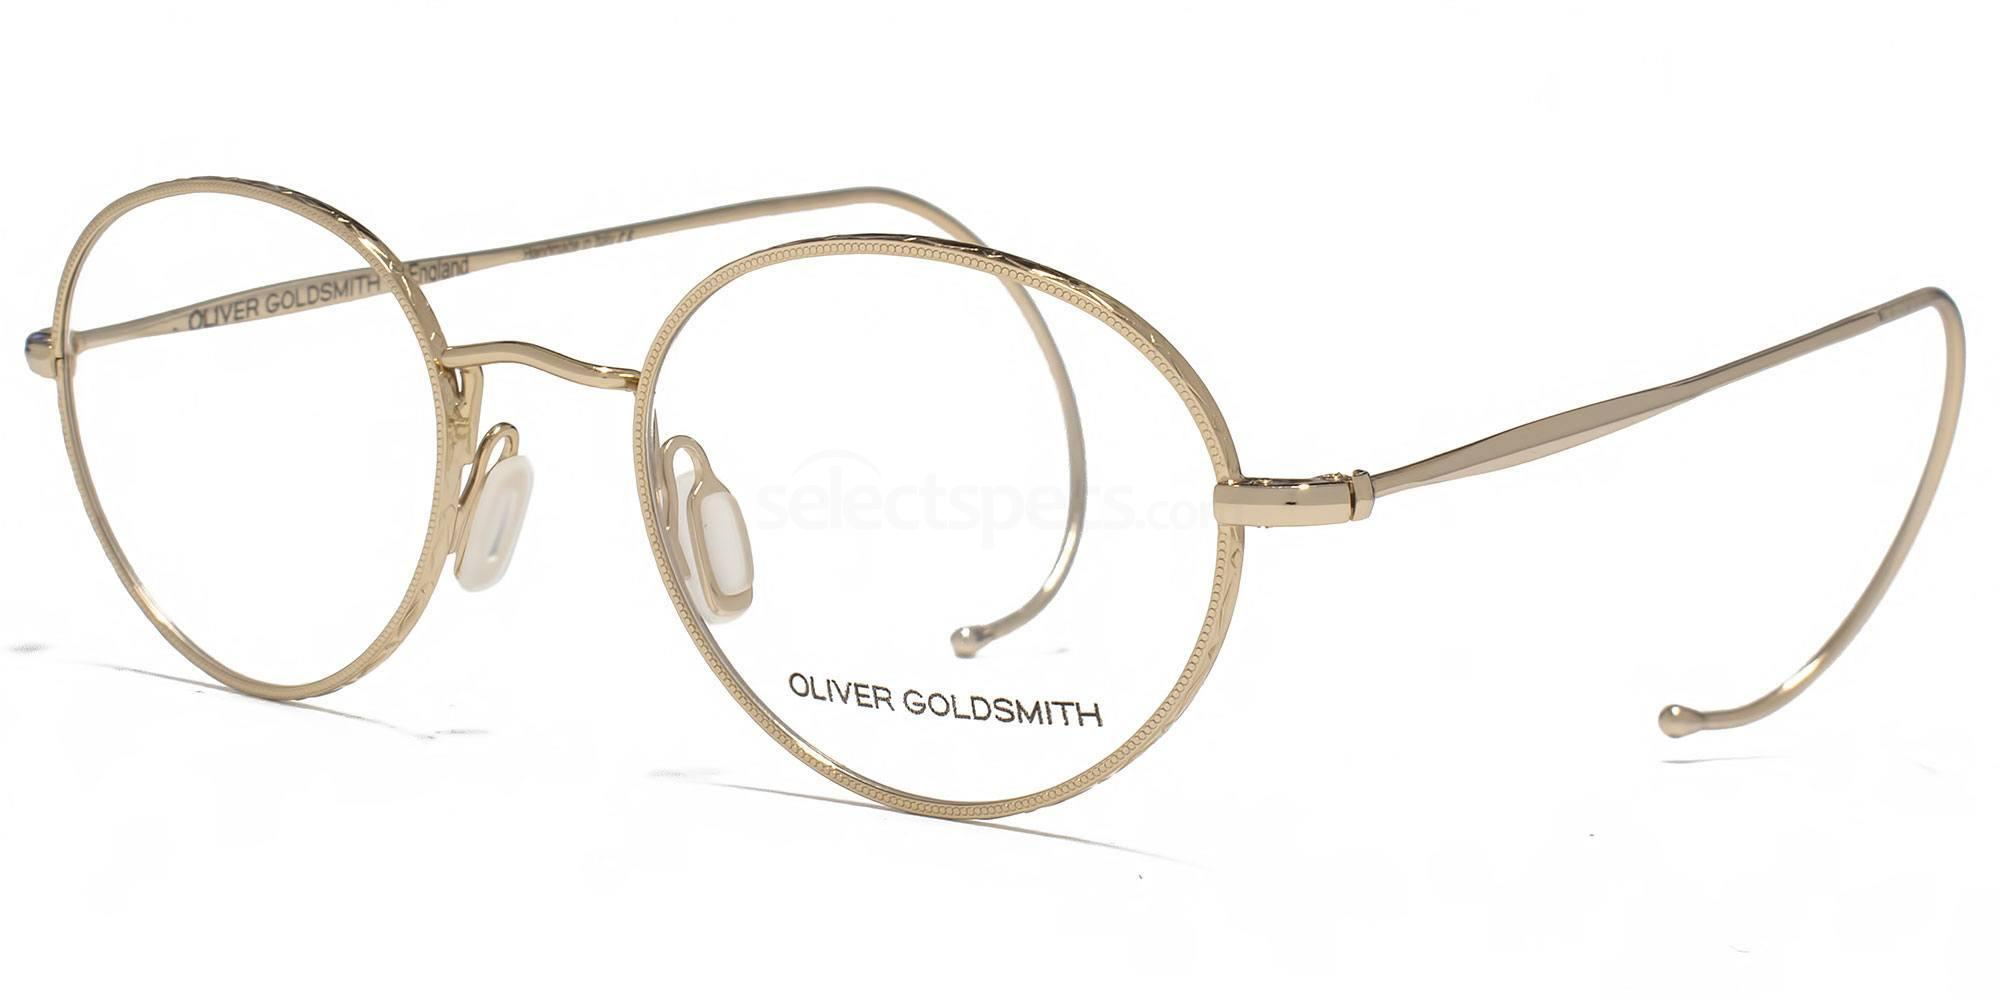 Oliver Goldsmith OLI001 CHARLIE glasses